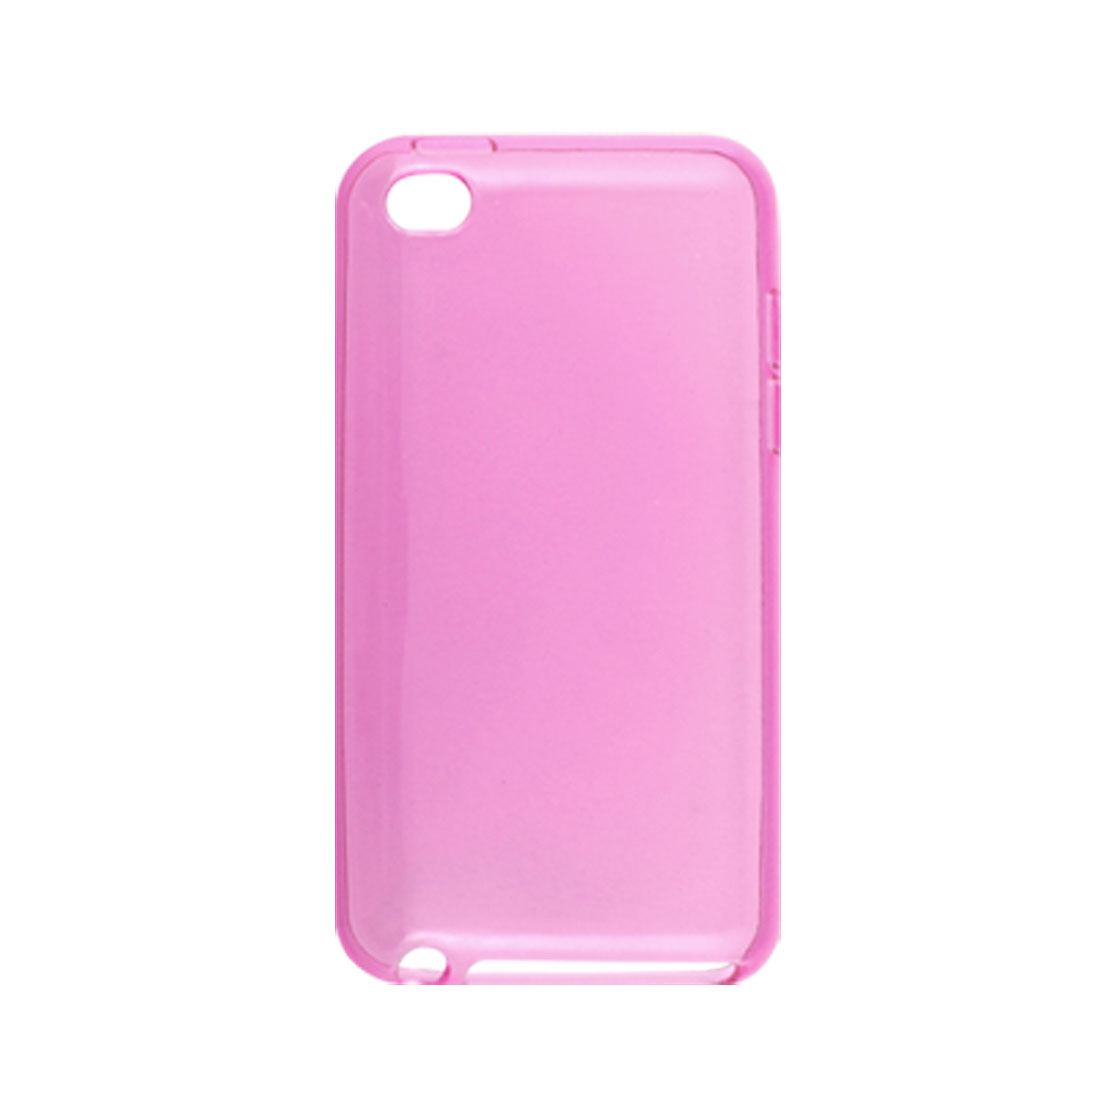 Clear Amaranth Pink Soft Plastic Back Case for iPod Touch 4